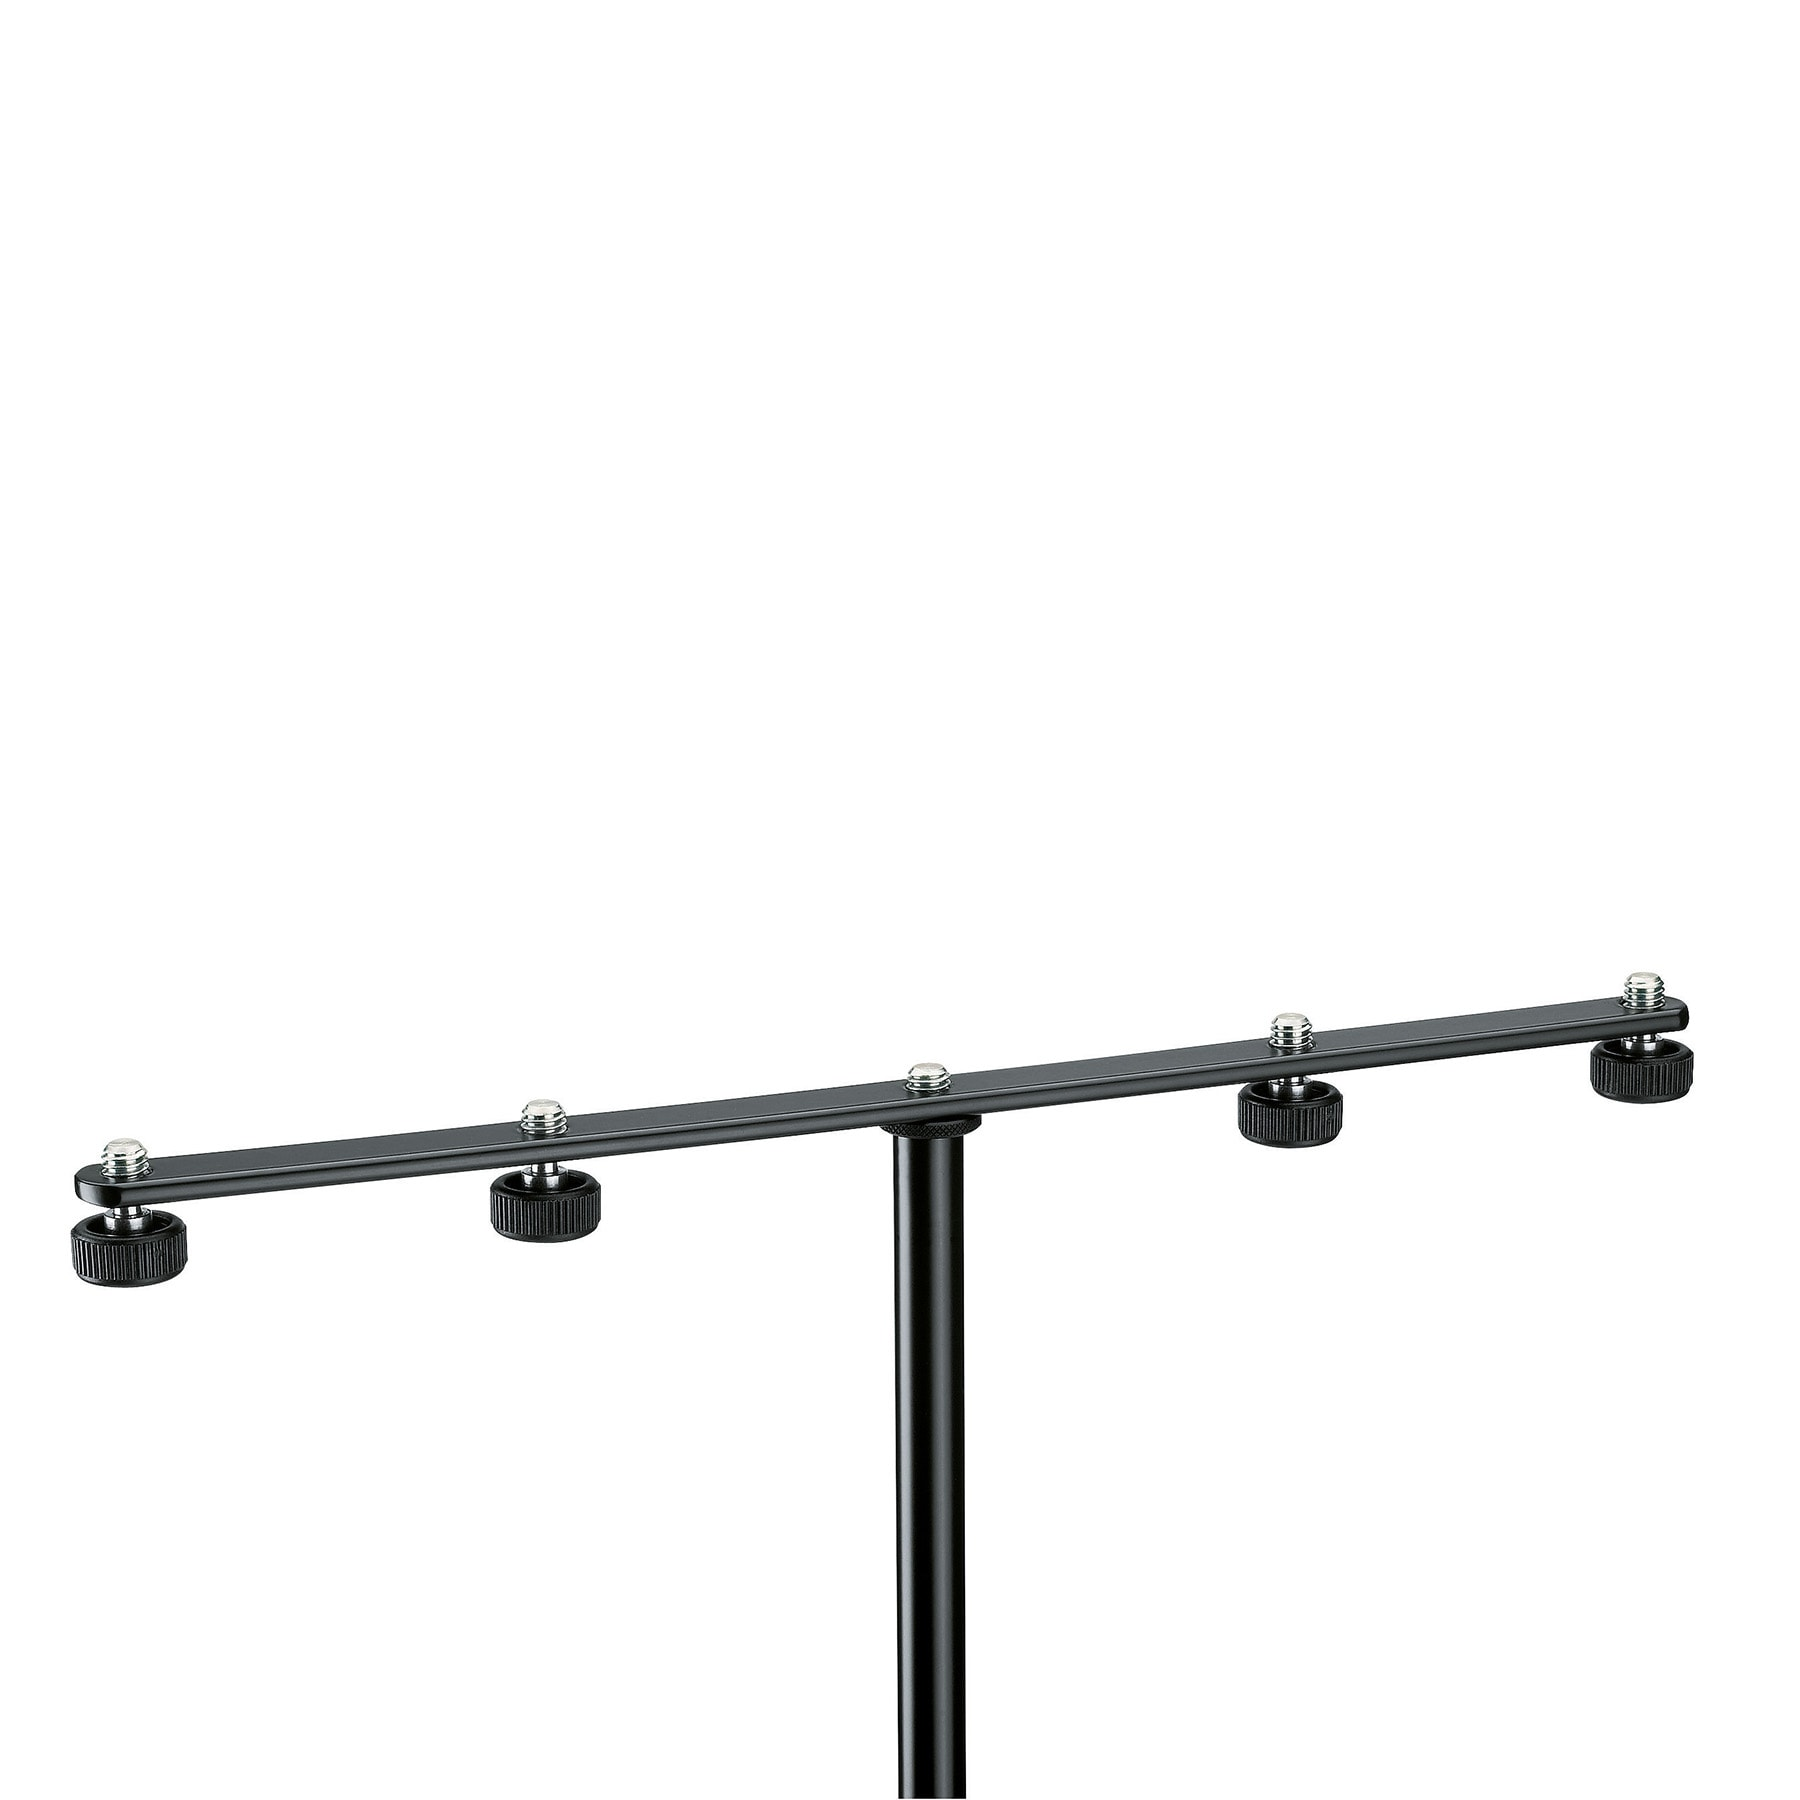 KM236 - Microphone bar